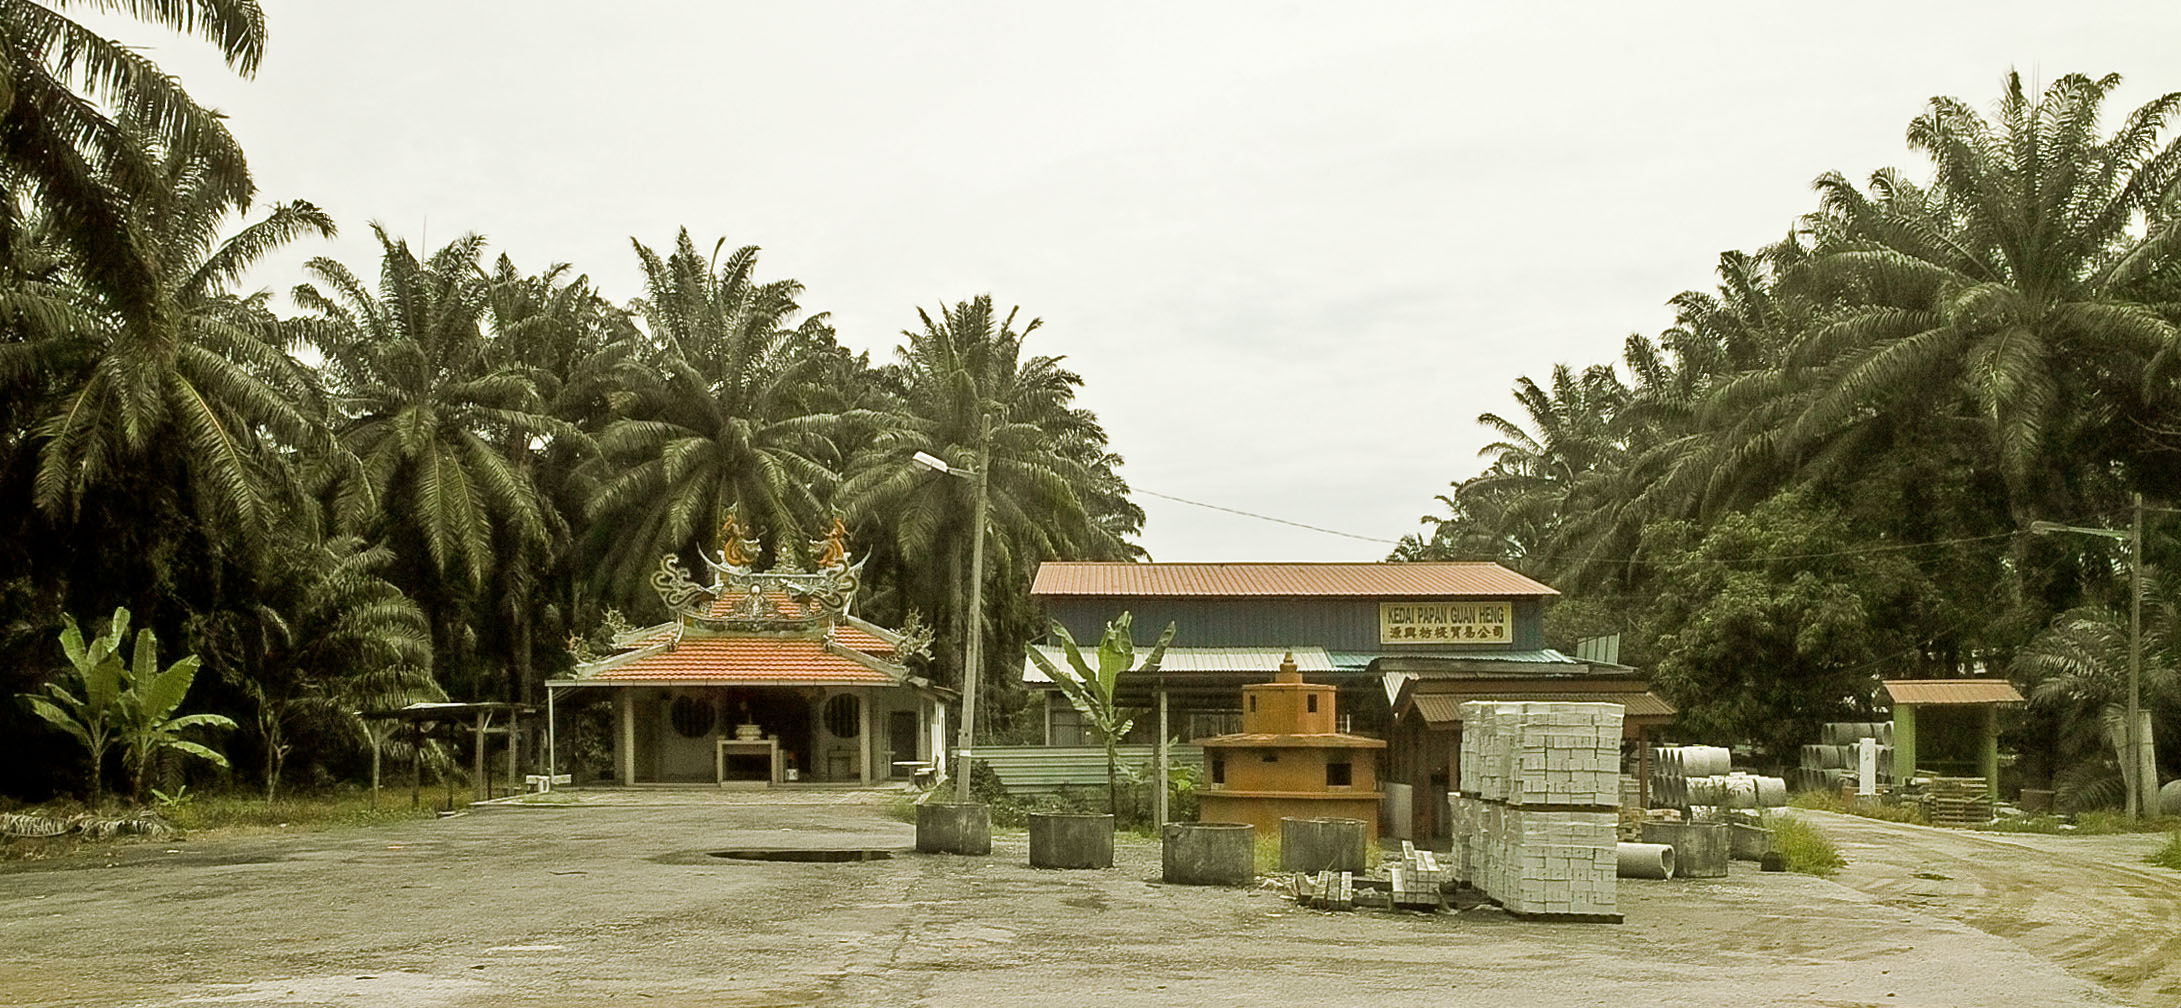 Taoist temple and brickyard